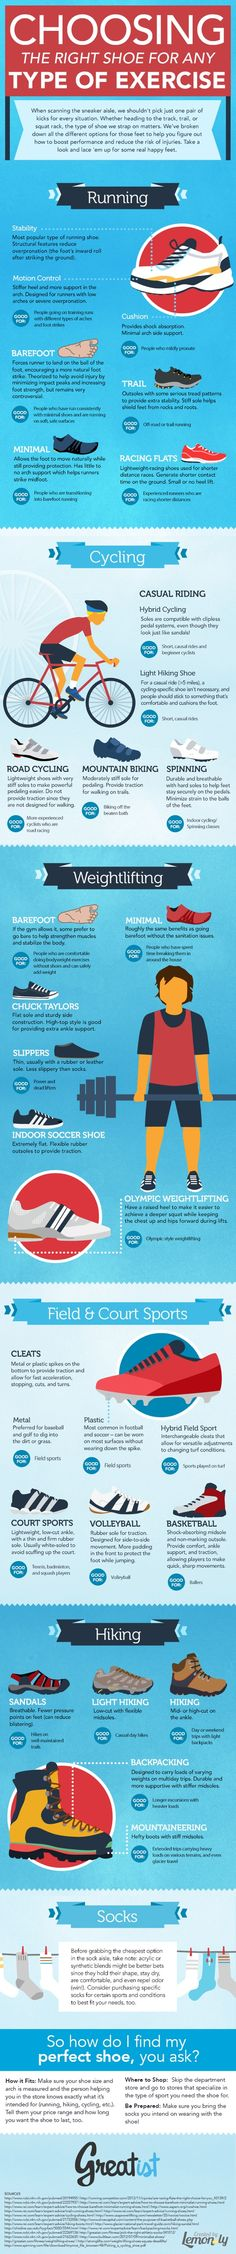 Choosing the right shoe for any type of excercise